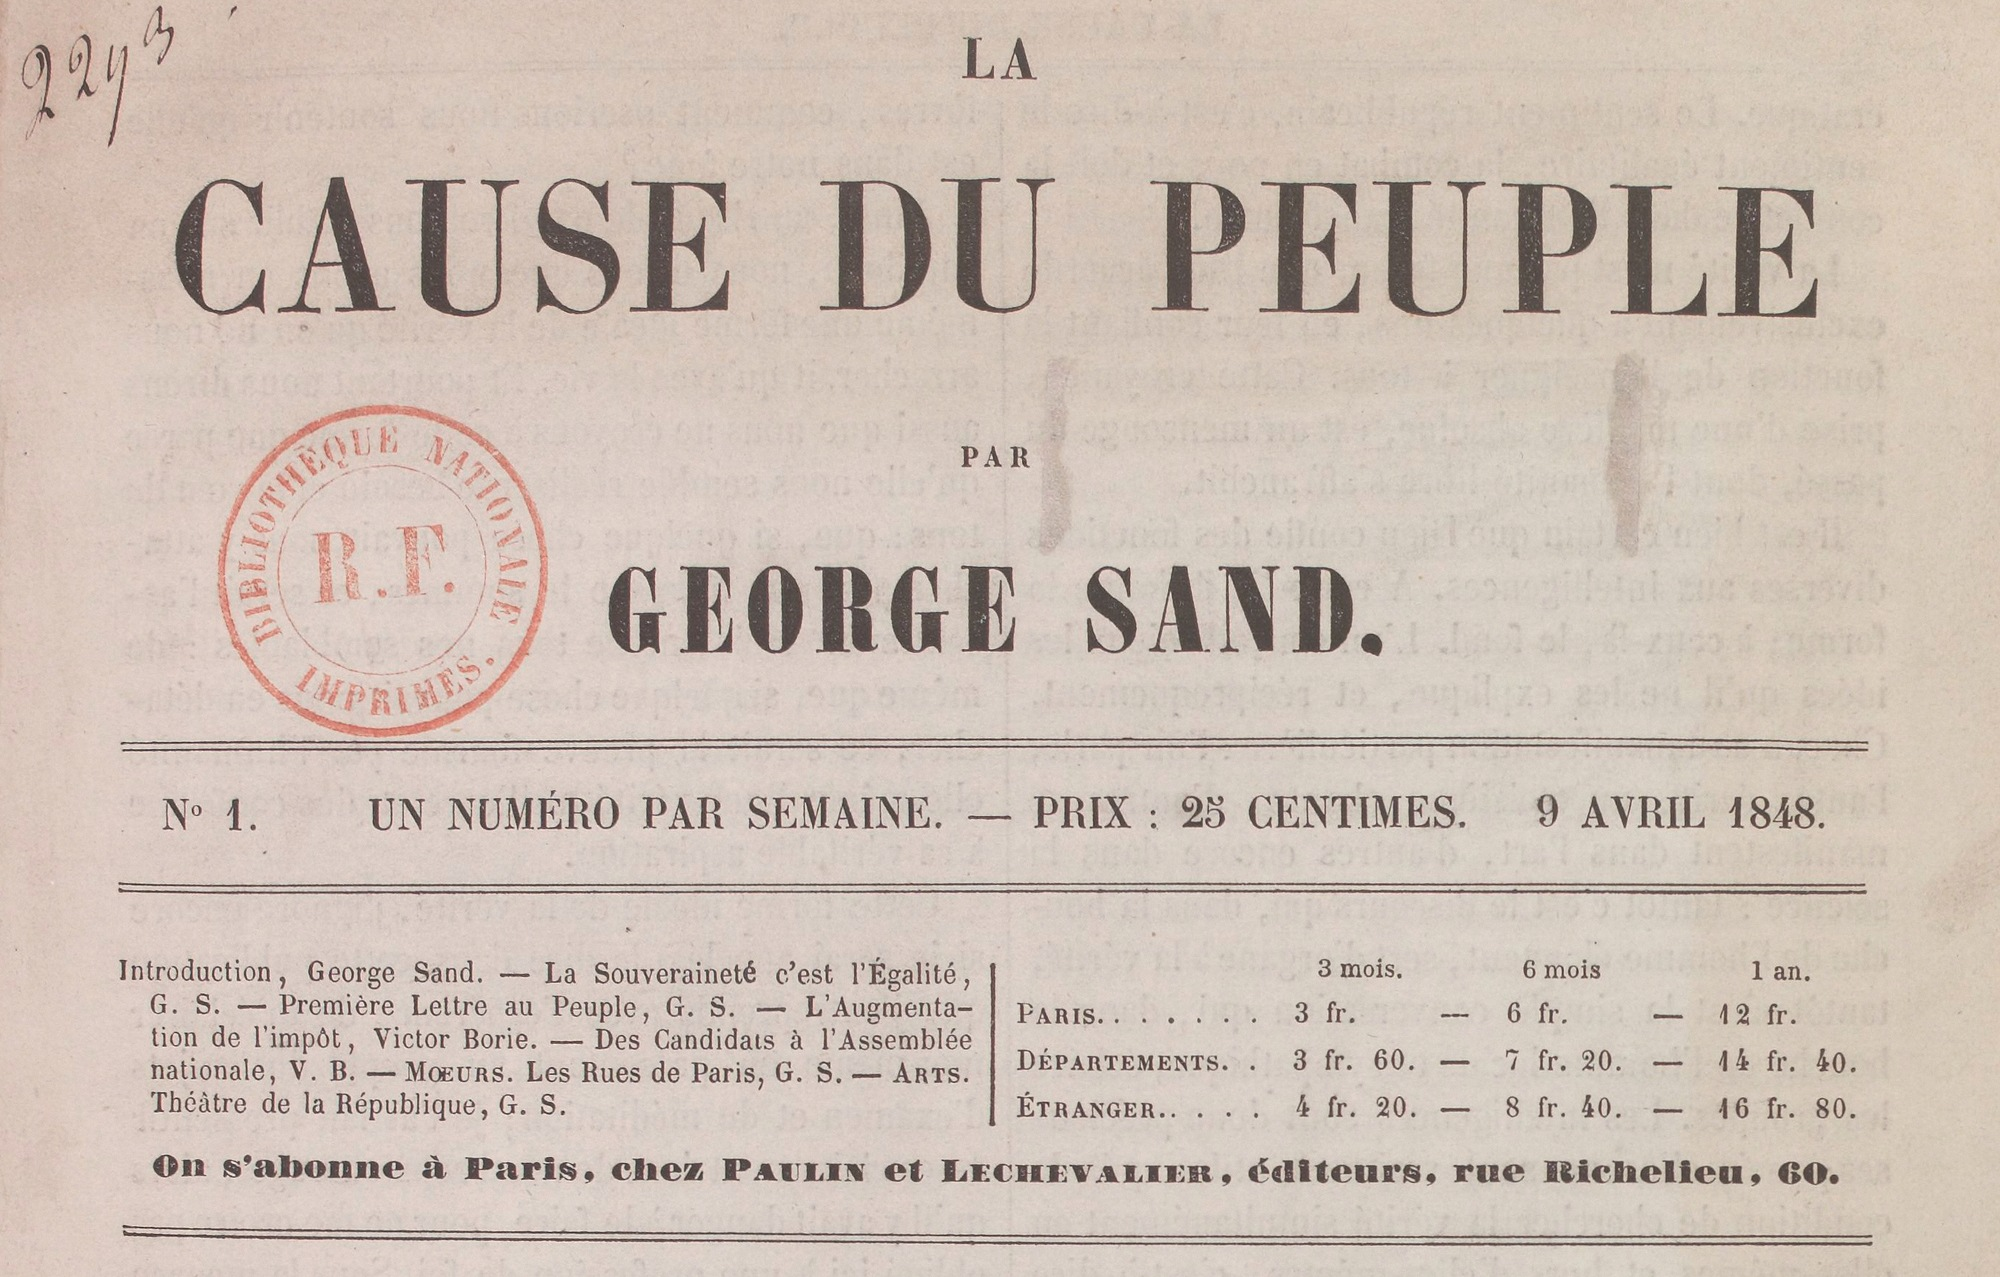 Journal La Cause du peuple, dirigé par George Sand